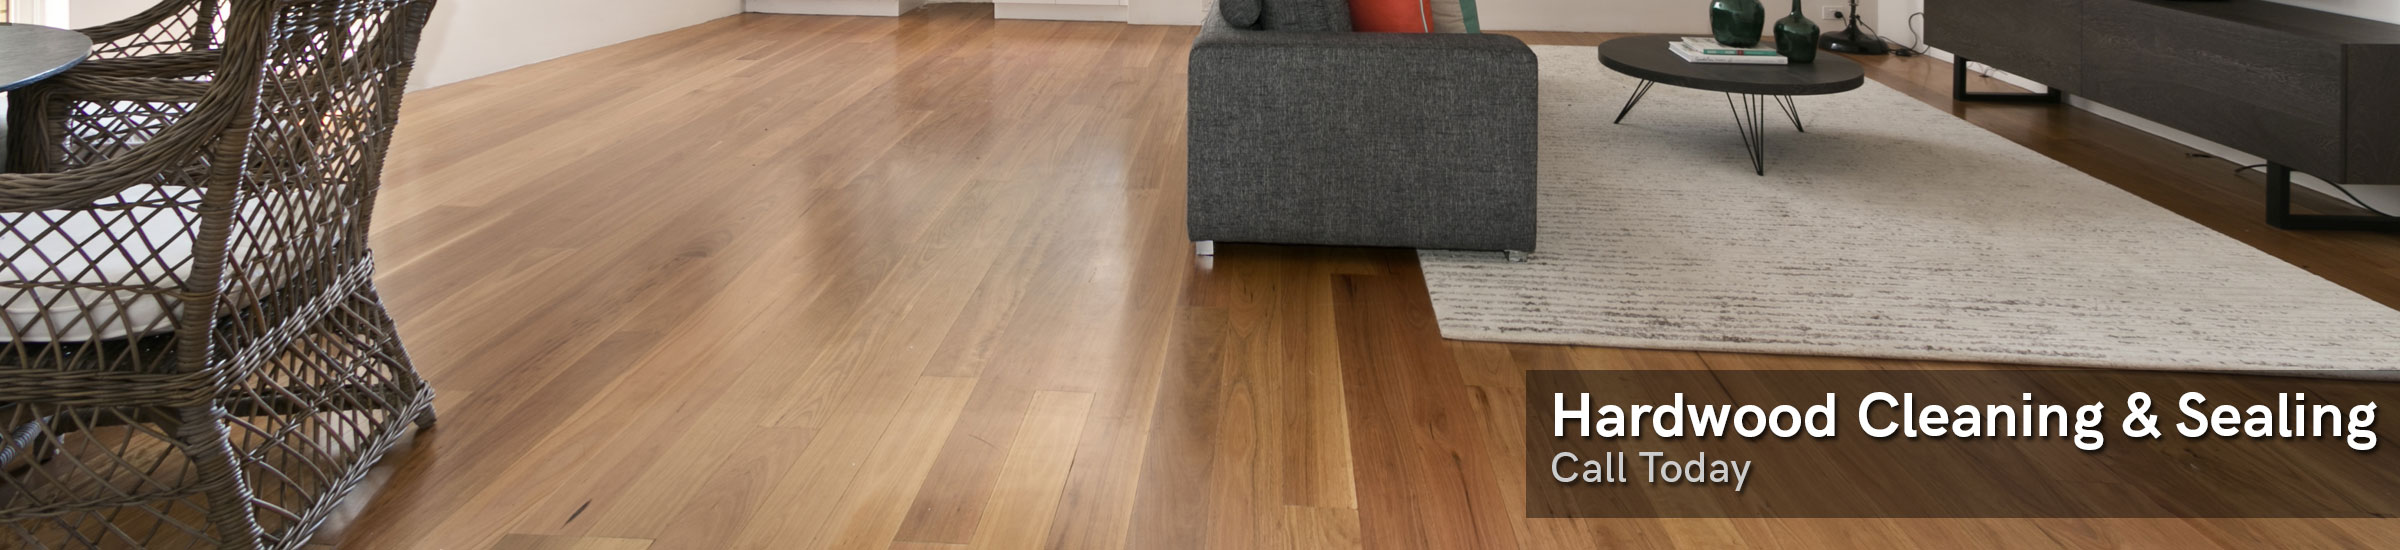 gallatin carpet cleaning is a small family owned business operating out of bozeman montana Accounting ch 07 - activity based costing gallatin carpet cleaning is a small, family-owned business operating out of a flat fee per hundred square feet of.